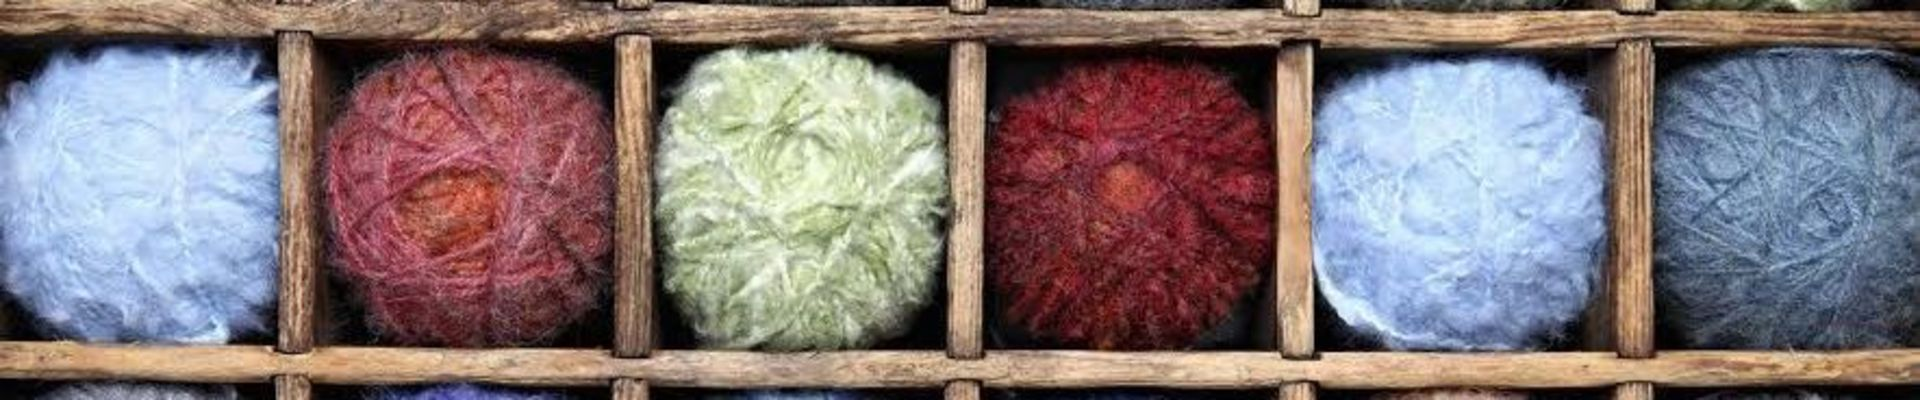 Luxury Sock Yarn Shop, Luxury Knitting Shop, Knitting Wool and Yarn Shop